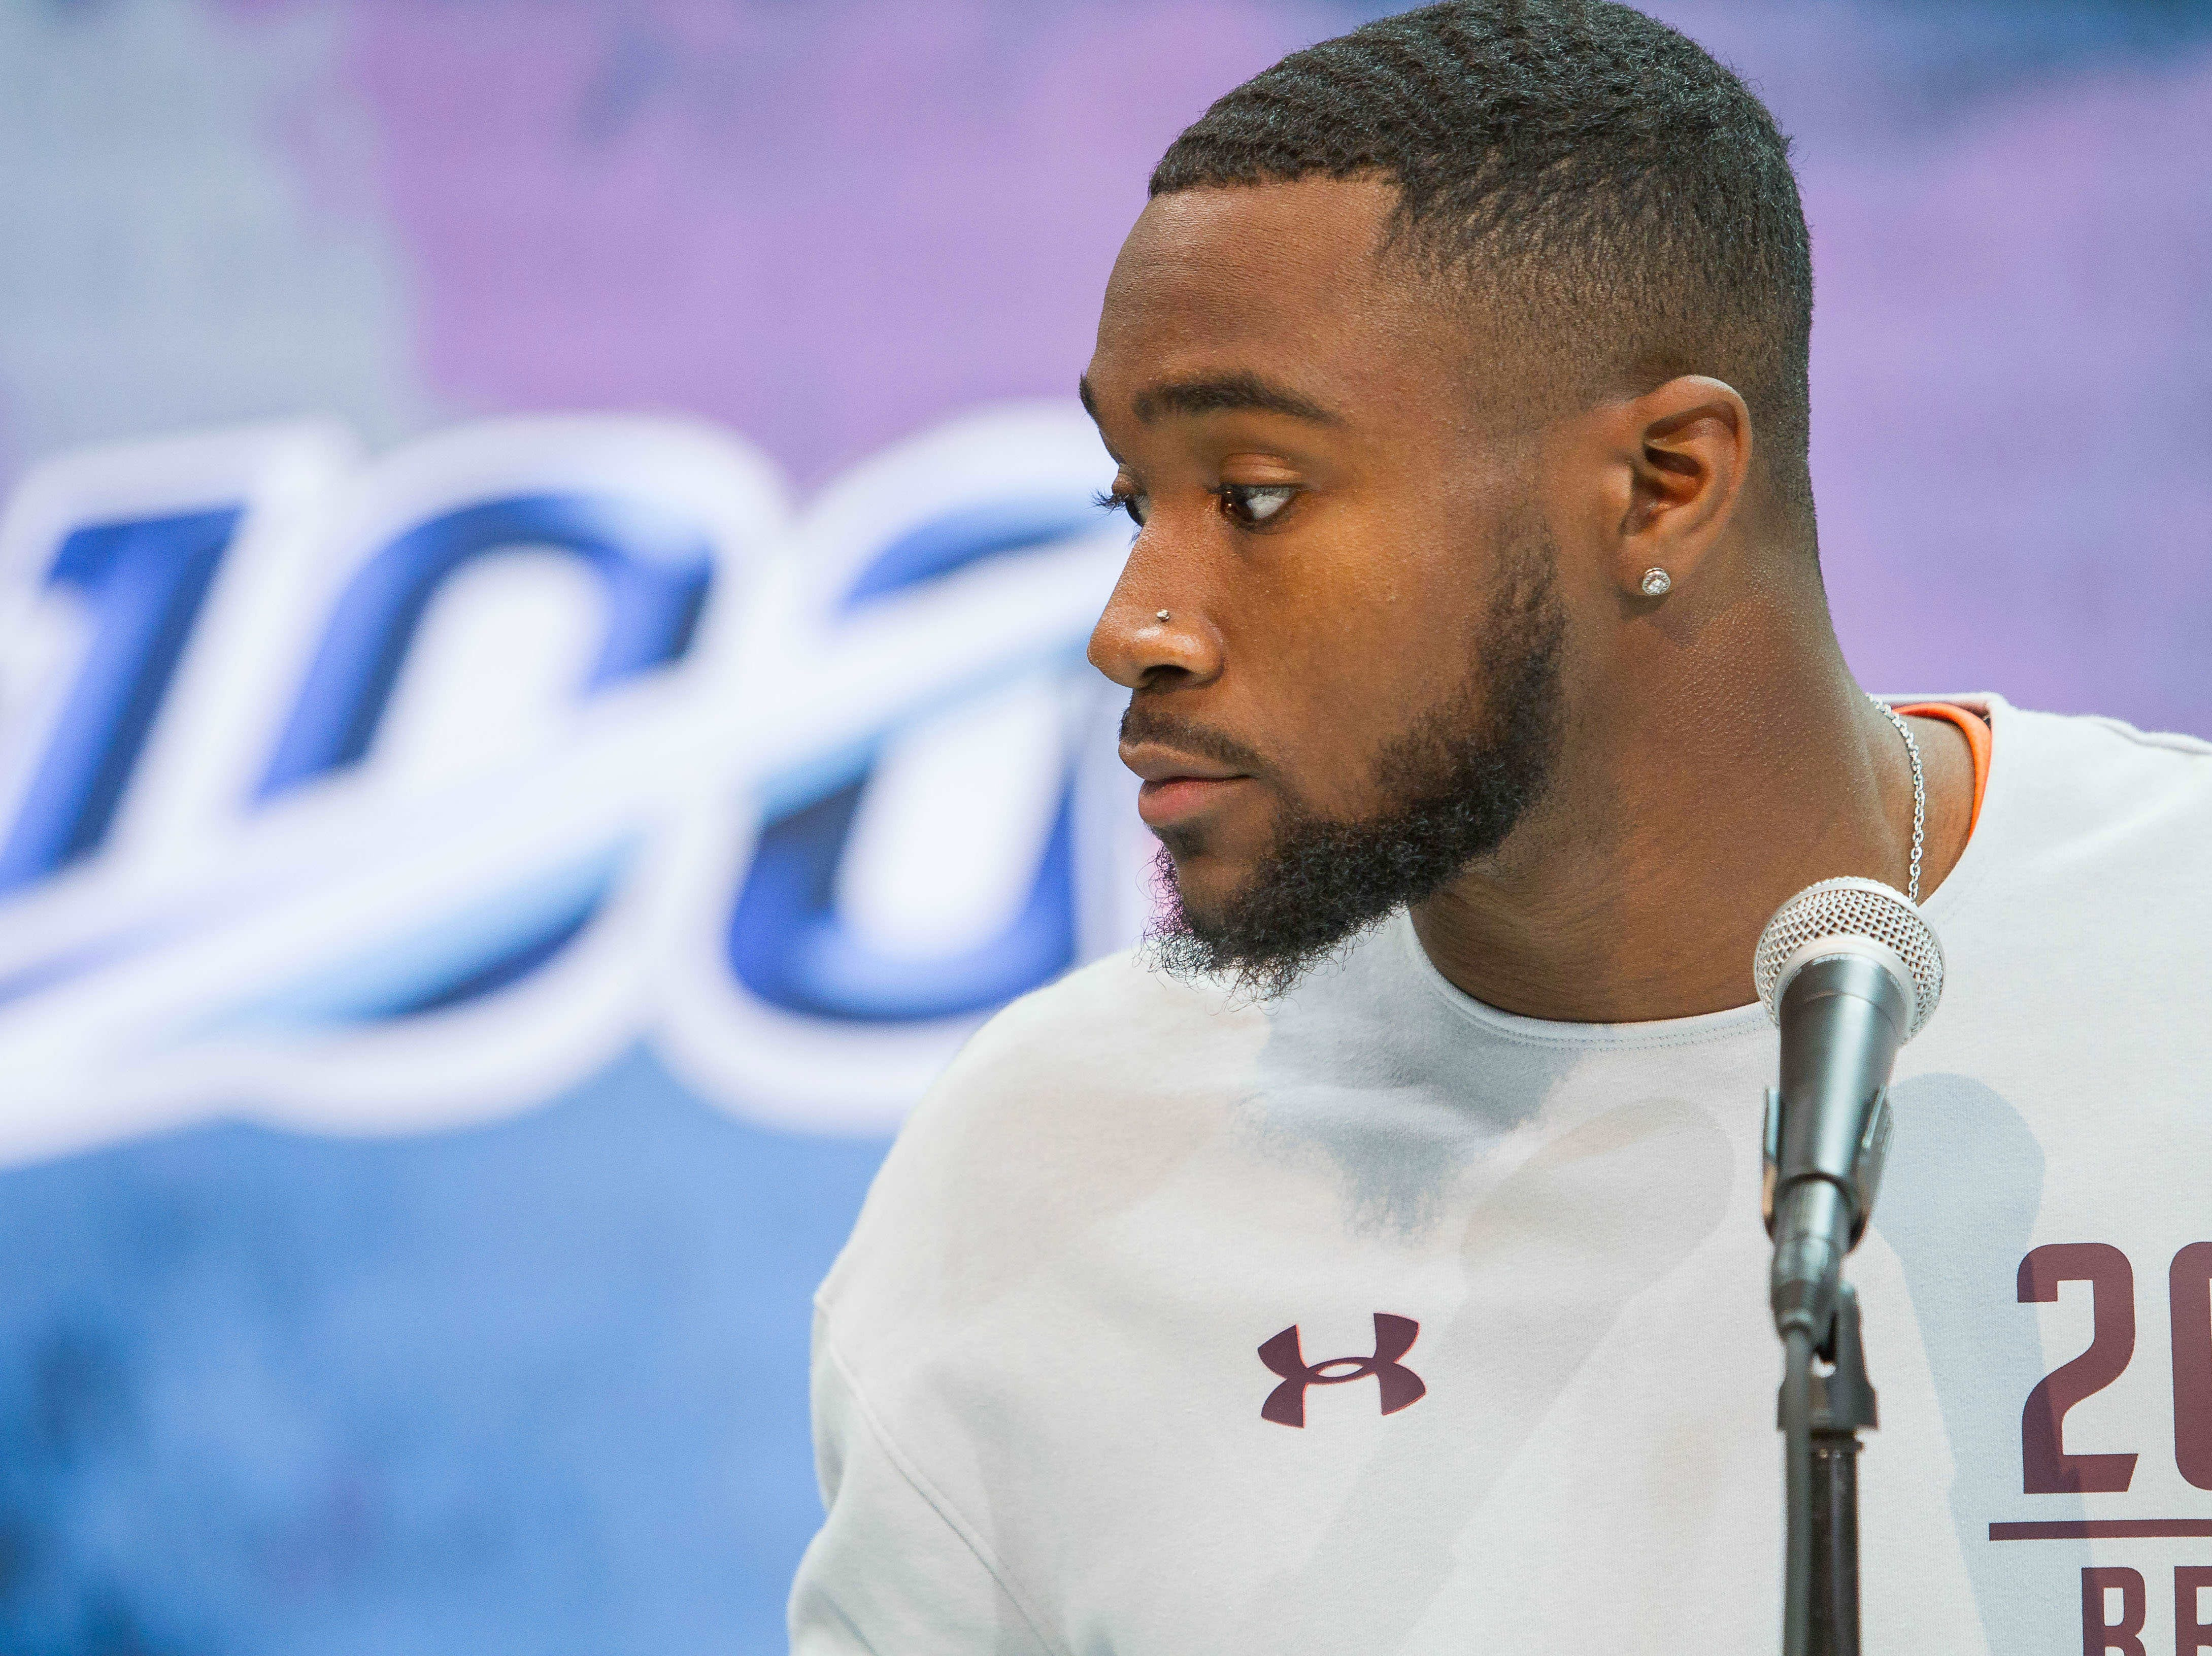 Feb 28, 2019; Indianapolis, IN, USA; Penn State running back Miles Sanders (RB20)  speaks to media during the 2019 NFL Combine at Indianapolis Convention Center. Mandatory Credit: Trevor Ruszkowski-USA TODAY Sports